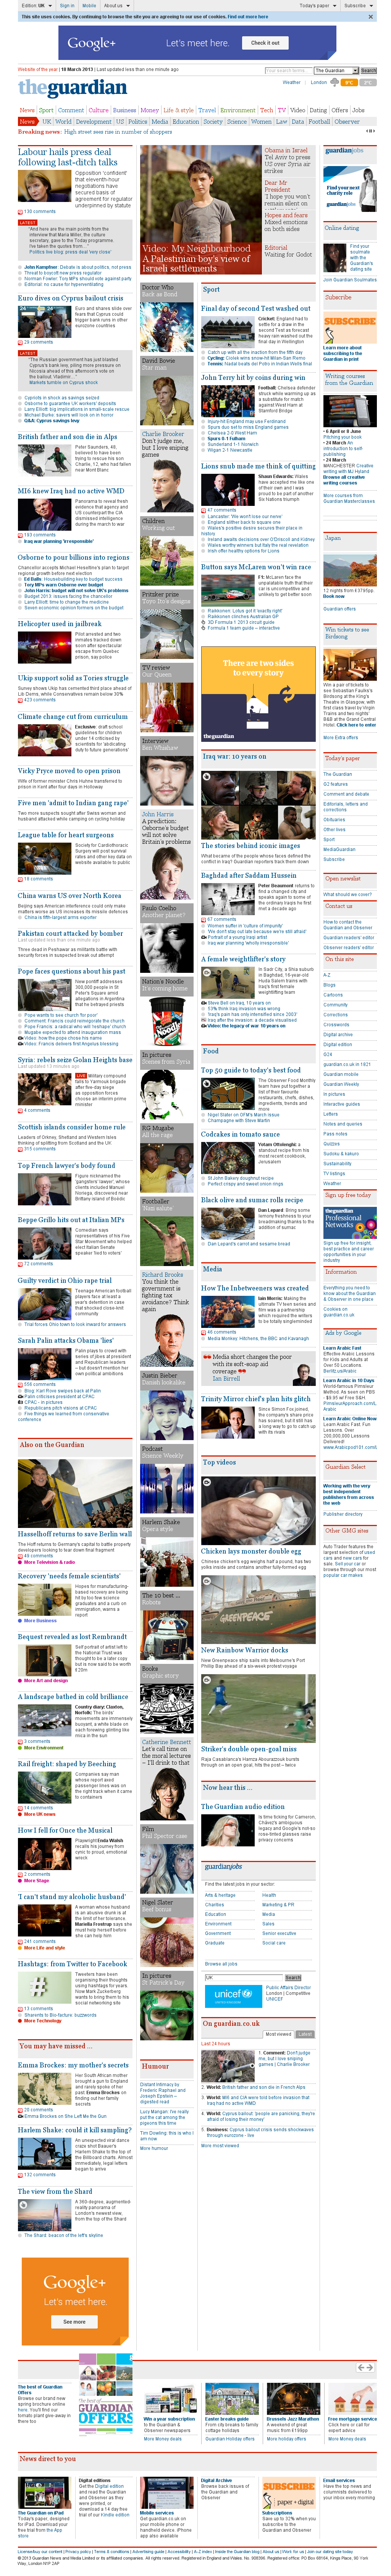 The Guardian at Monday March 18, 2013, 9:09 a.m. UTC